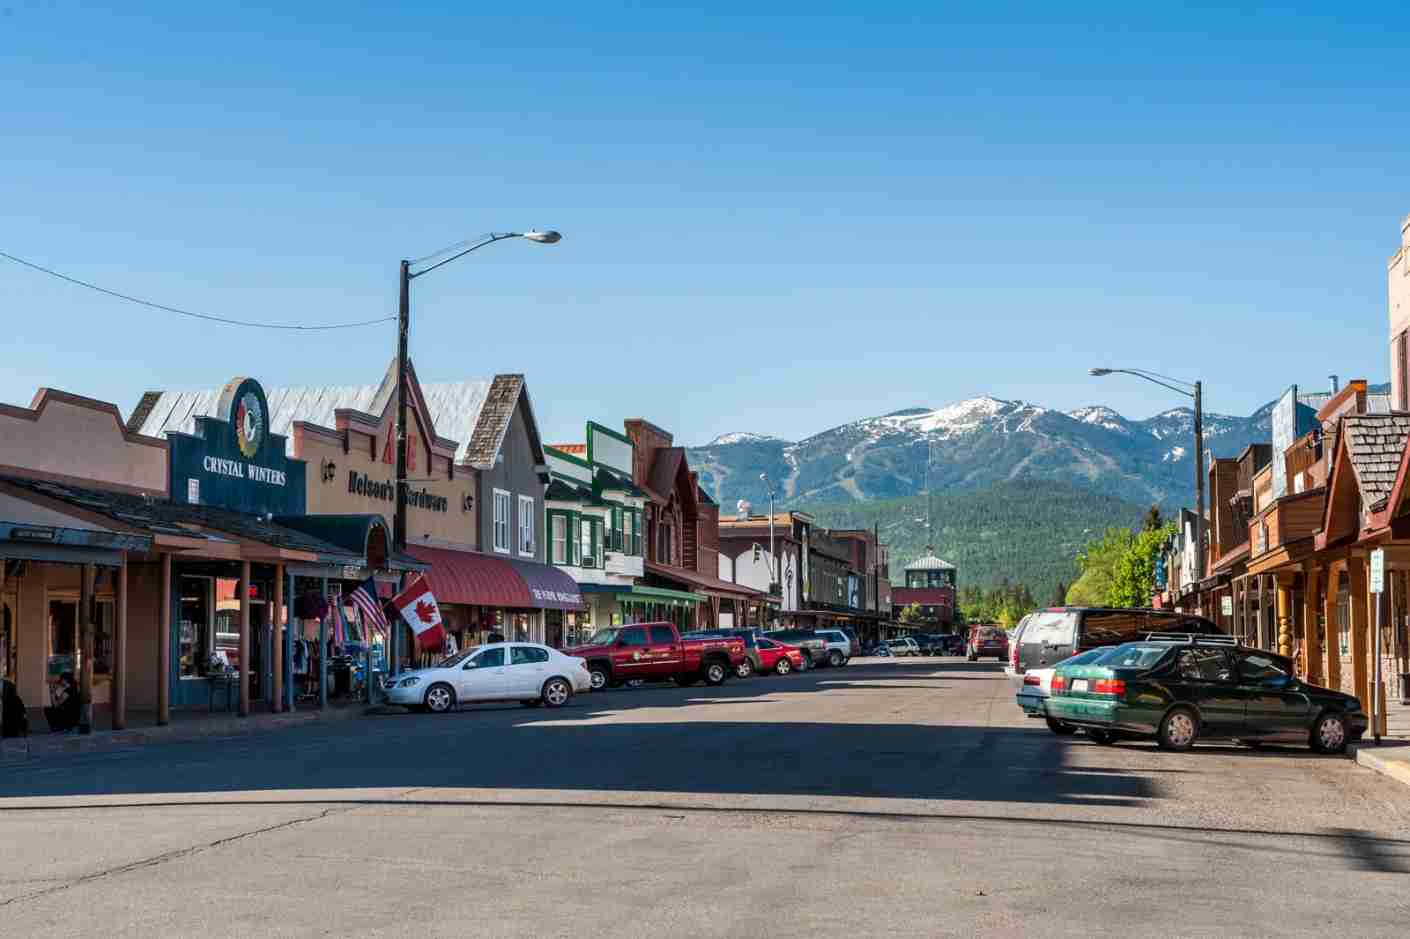 The town of Whitefish, Montana looks out toward the mountains. (Photo via Shutterstock)